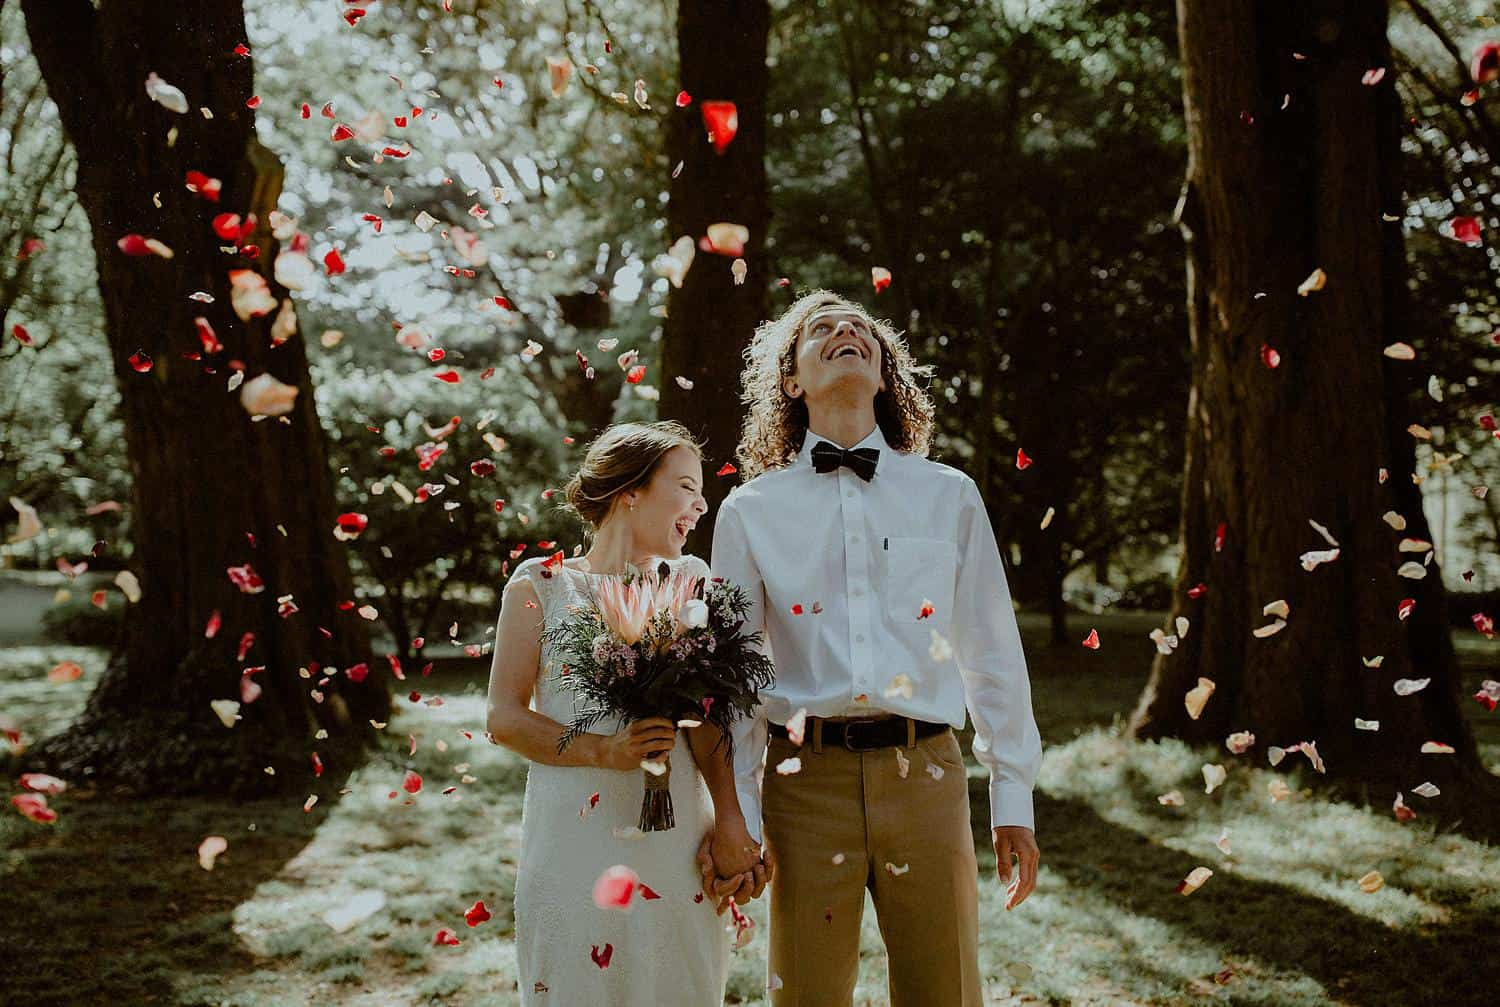 creative candid wedding photography